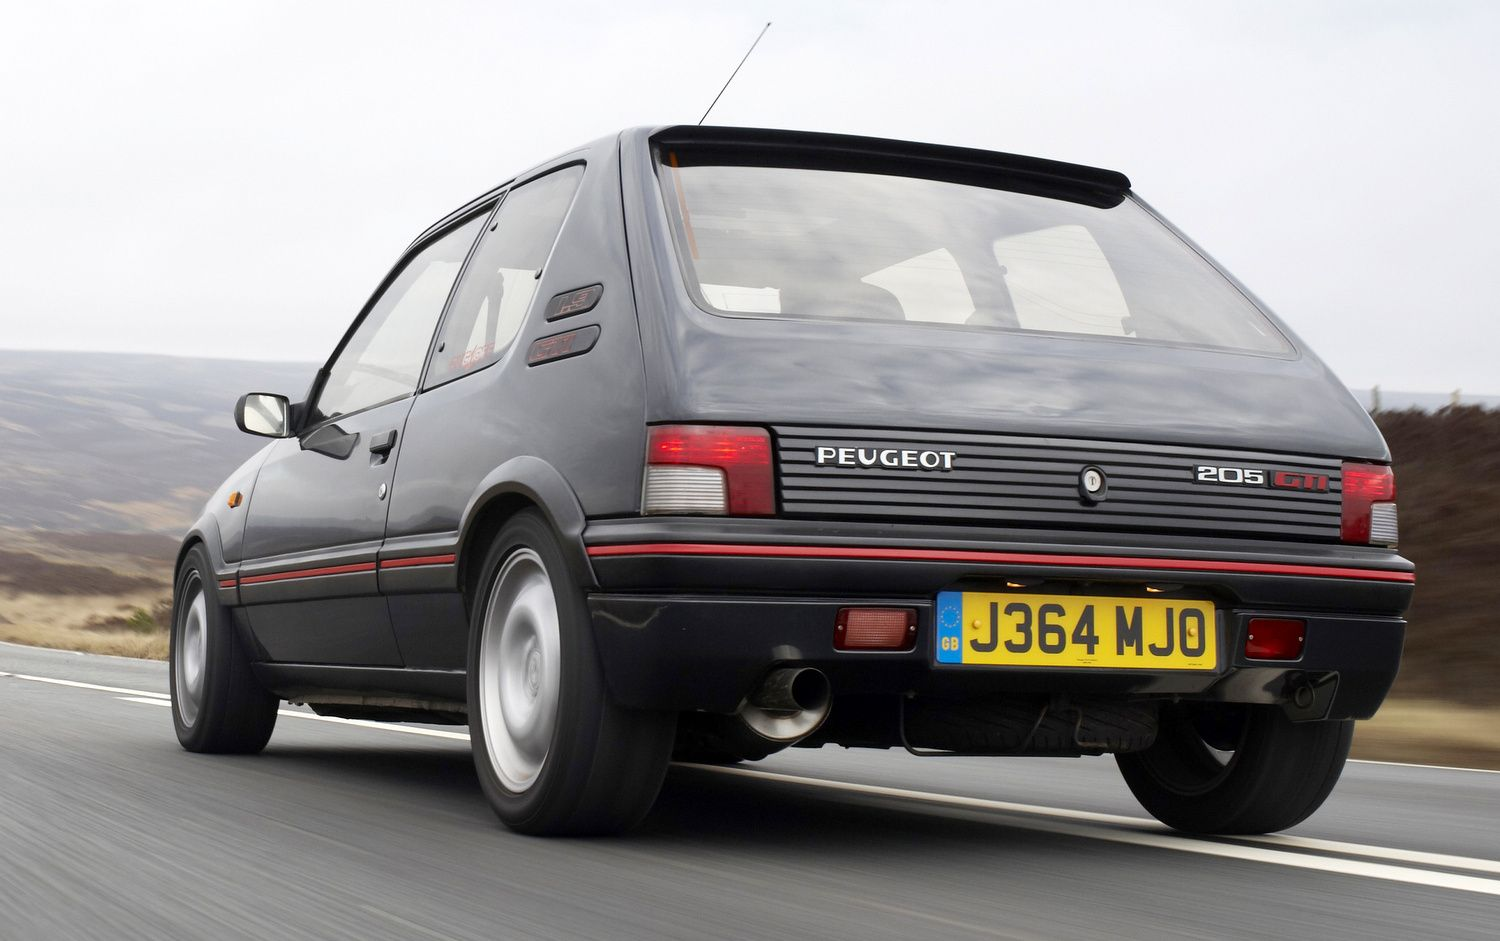 Almost completely unknown in the US, the Peugeot 205 GTi might still be the best driver's hot hatch ever built.